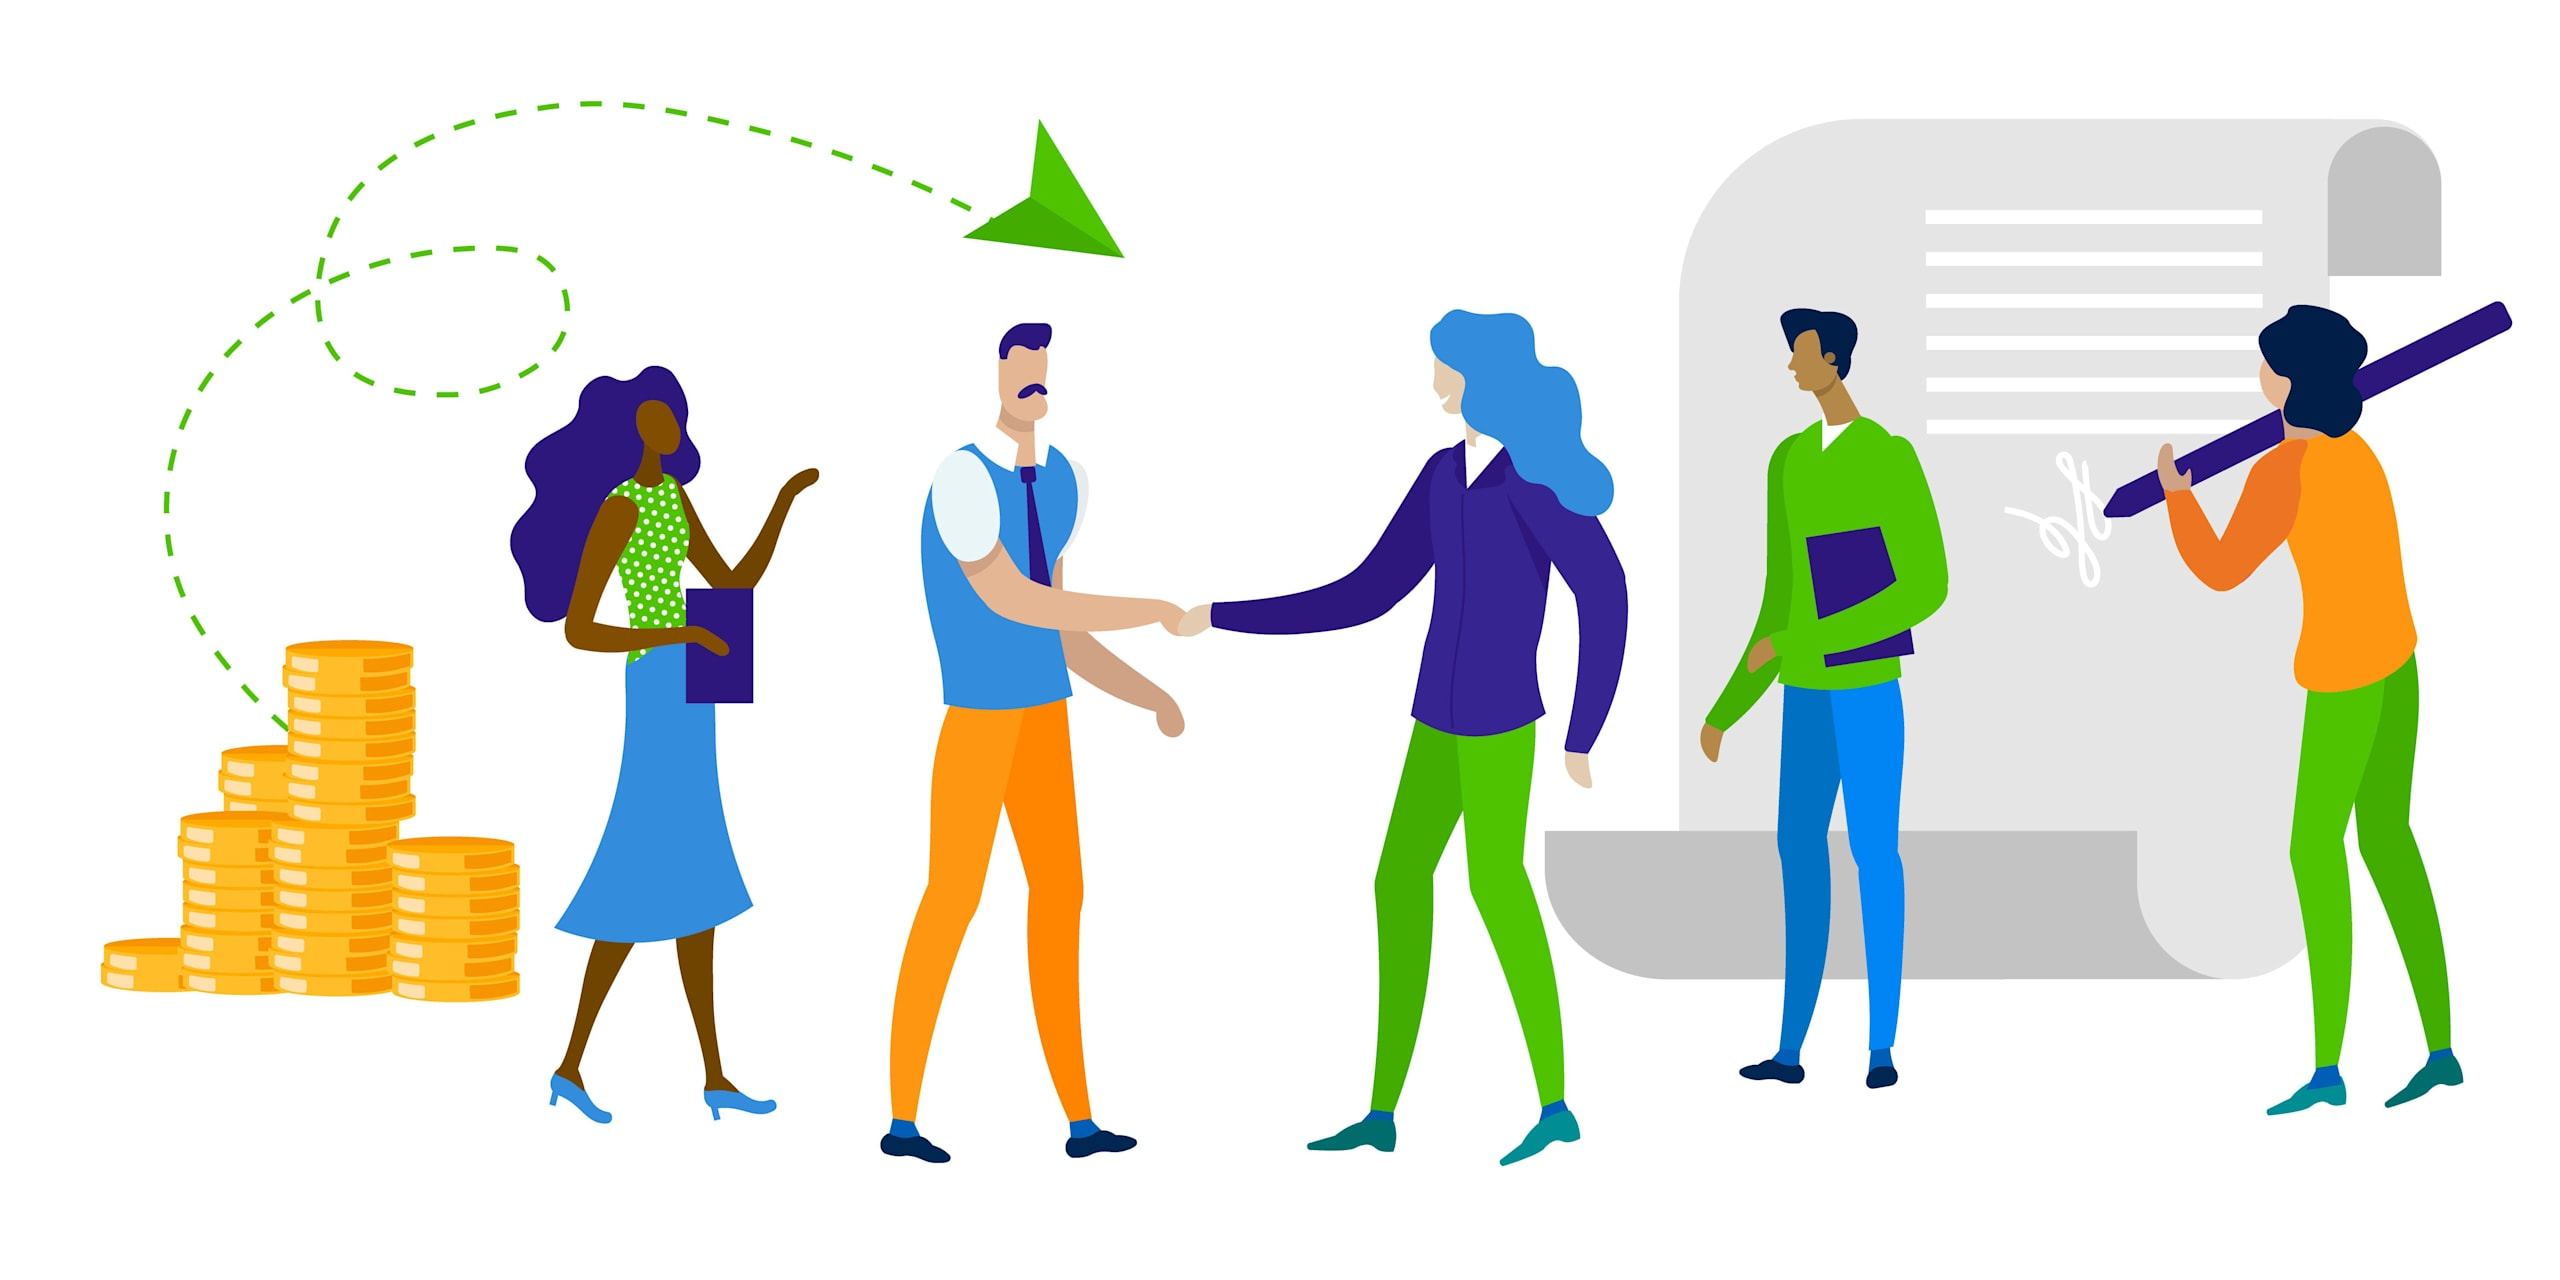 Illustration of 5 people hanging out happily due to their affordable credit and all the savings they're getting with lower APRs